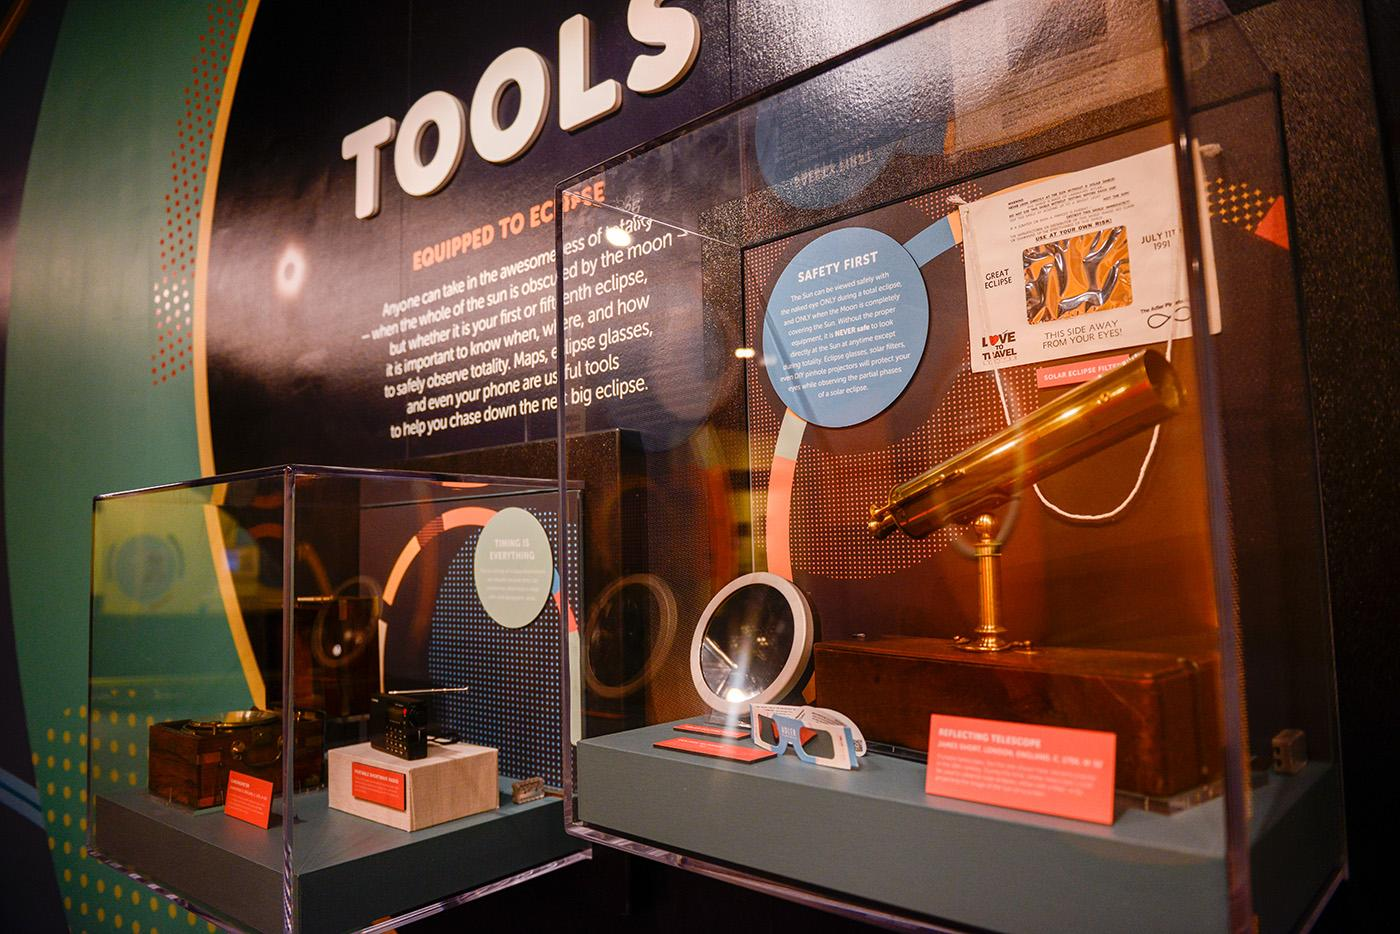 Eclipse-watching tools, old and new, at the Adler Planetarium's Chasing Eclipses exhibit. Photo: Adler Planetarium